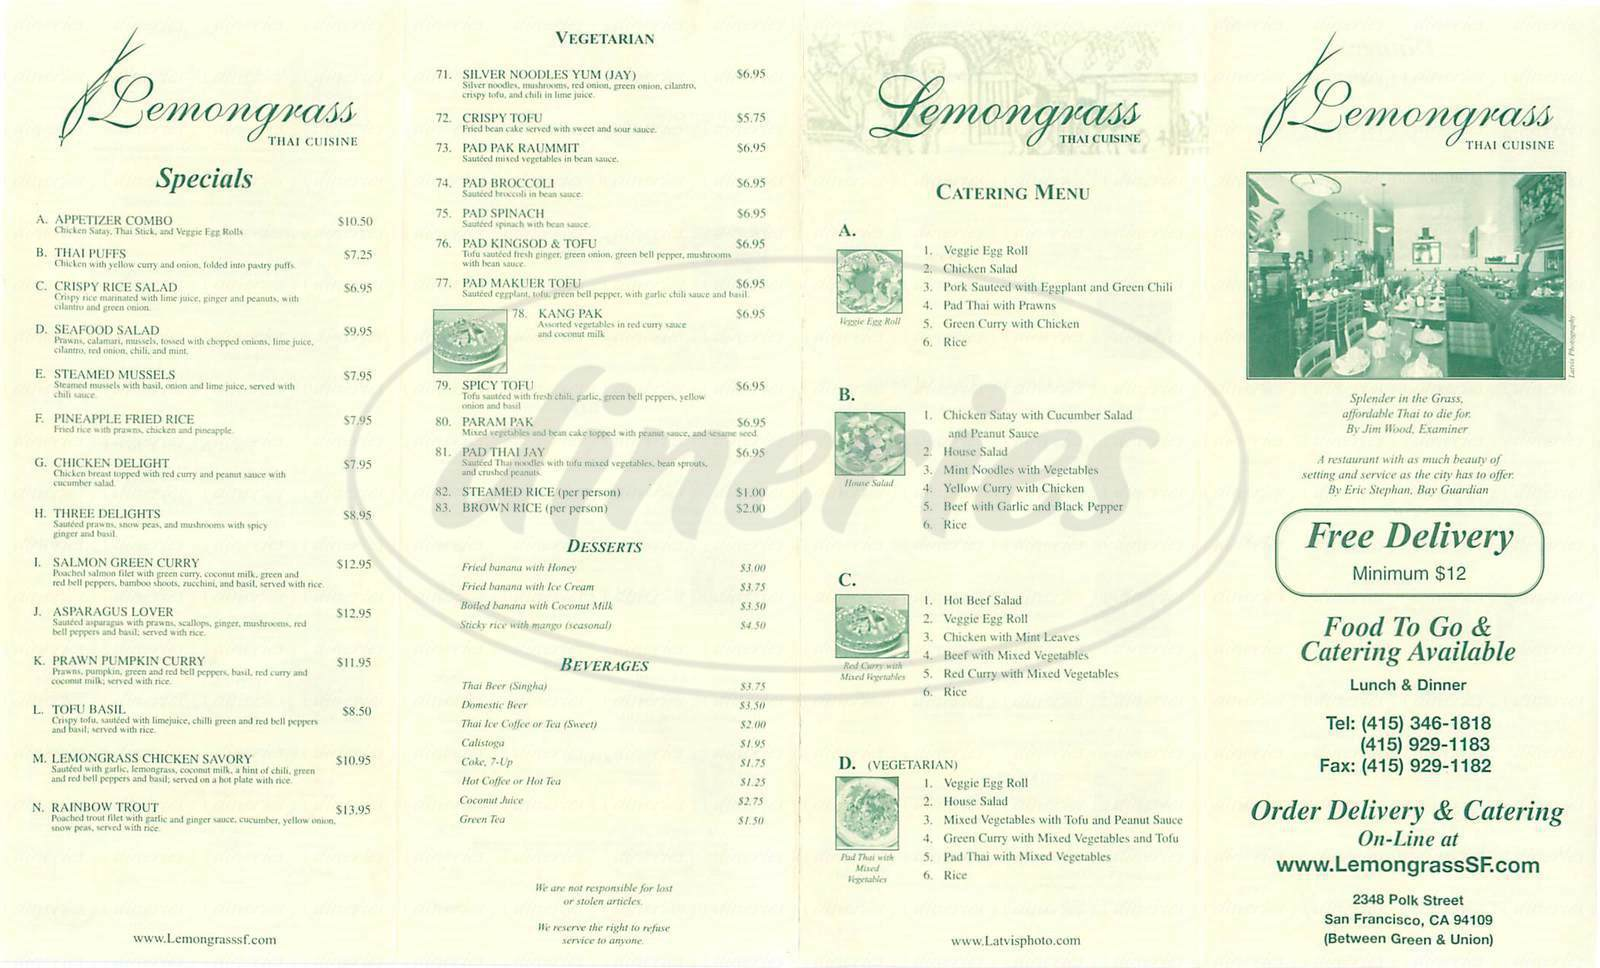 menu for Lemongrass Thai Cuisine